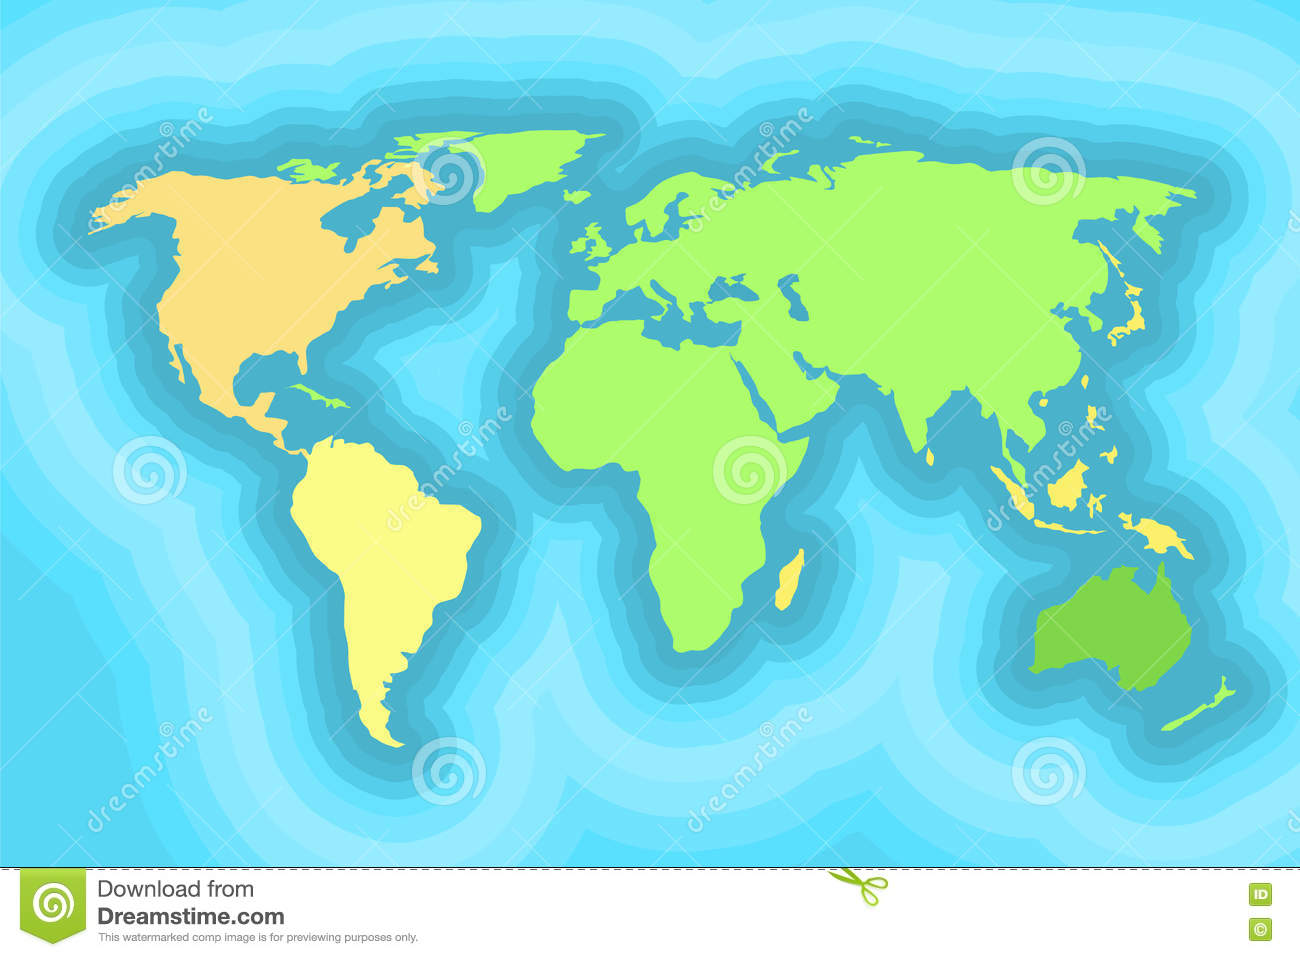 World Map For Kids Wallpaper Design Stock Vector Illustration Of